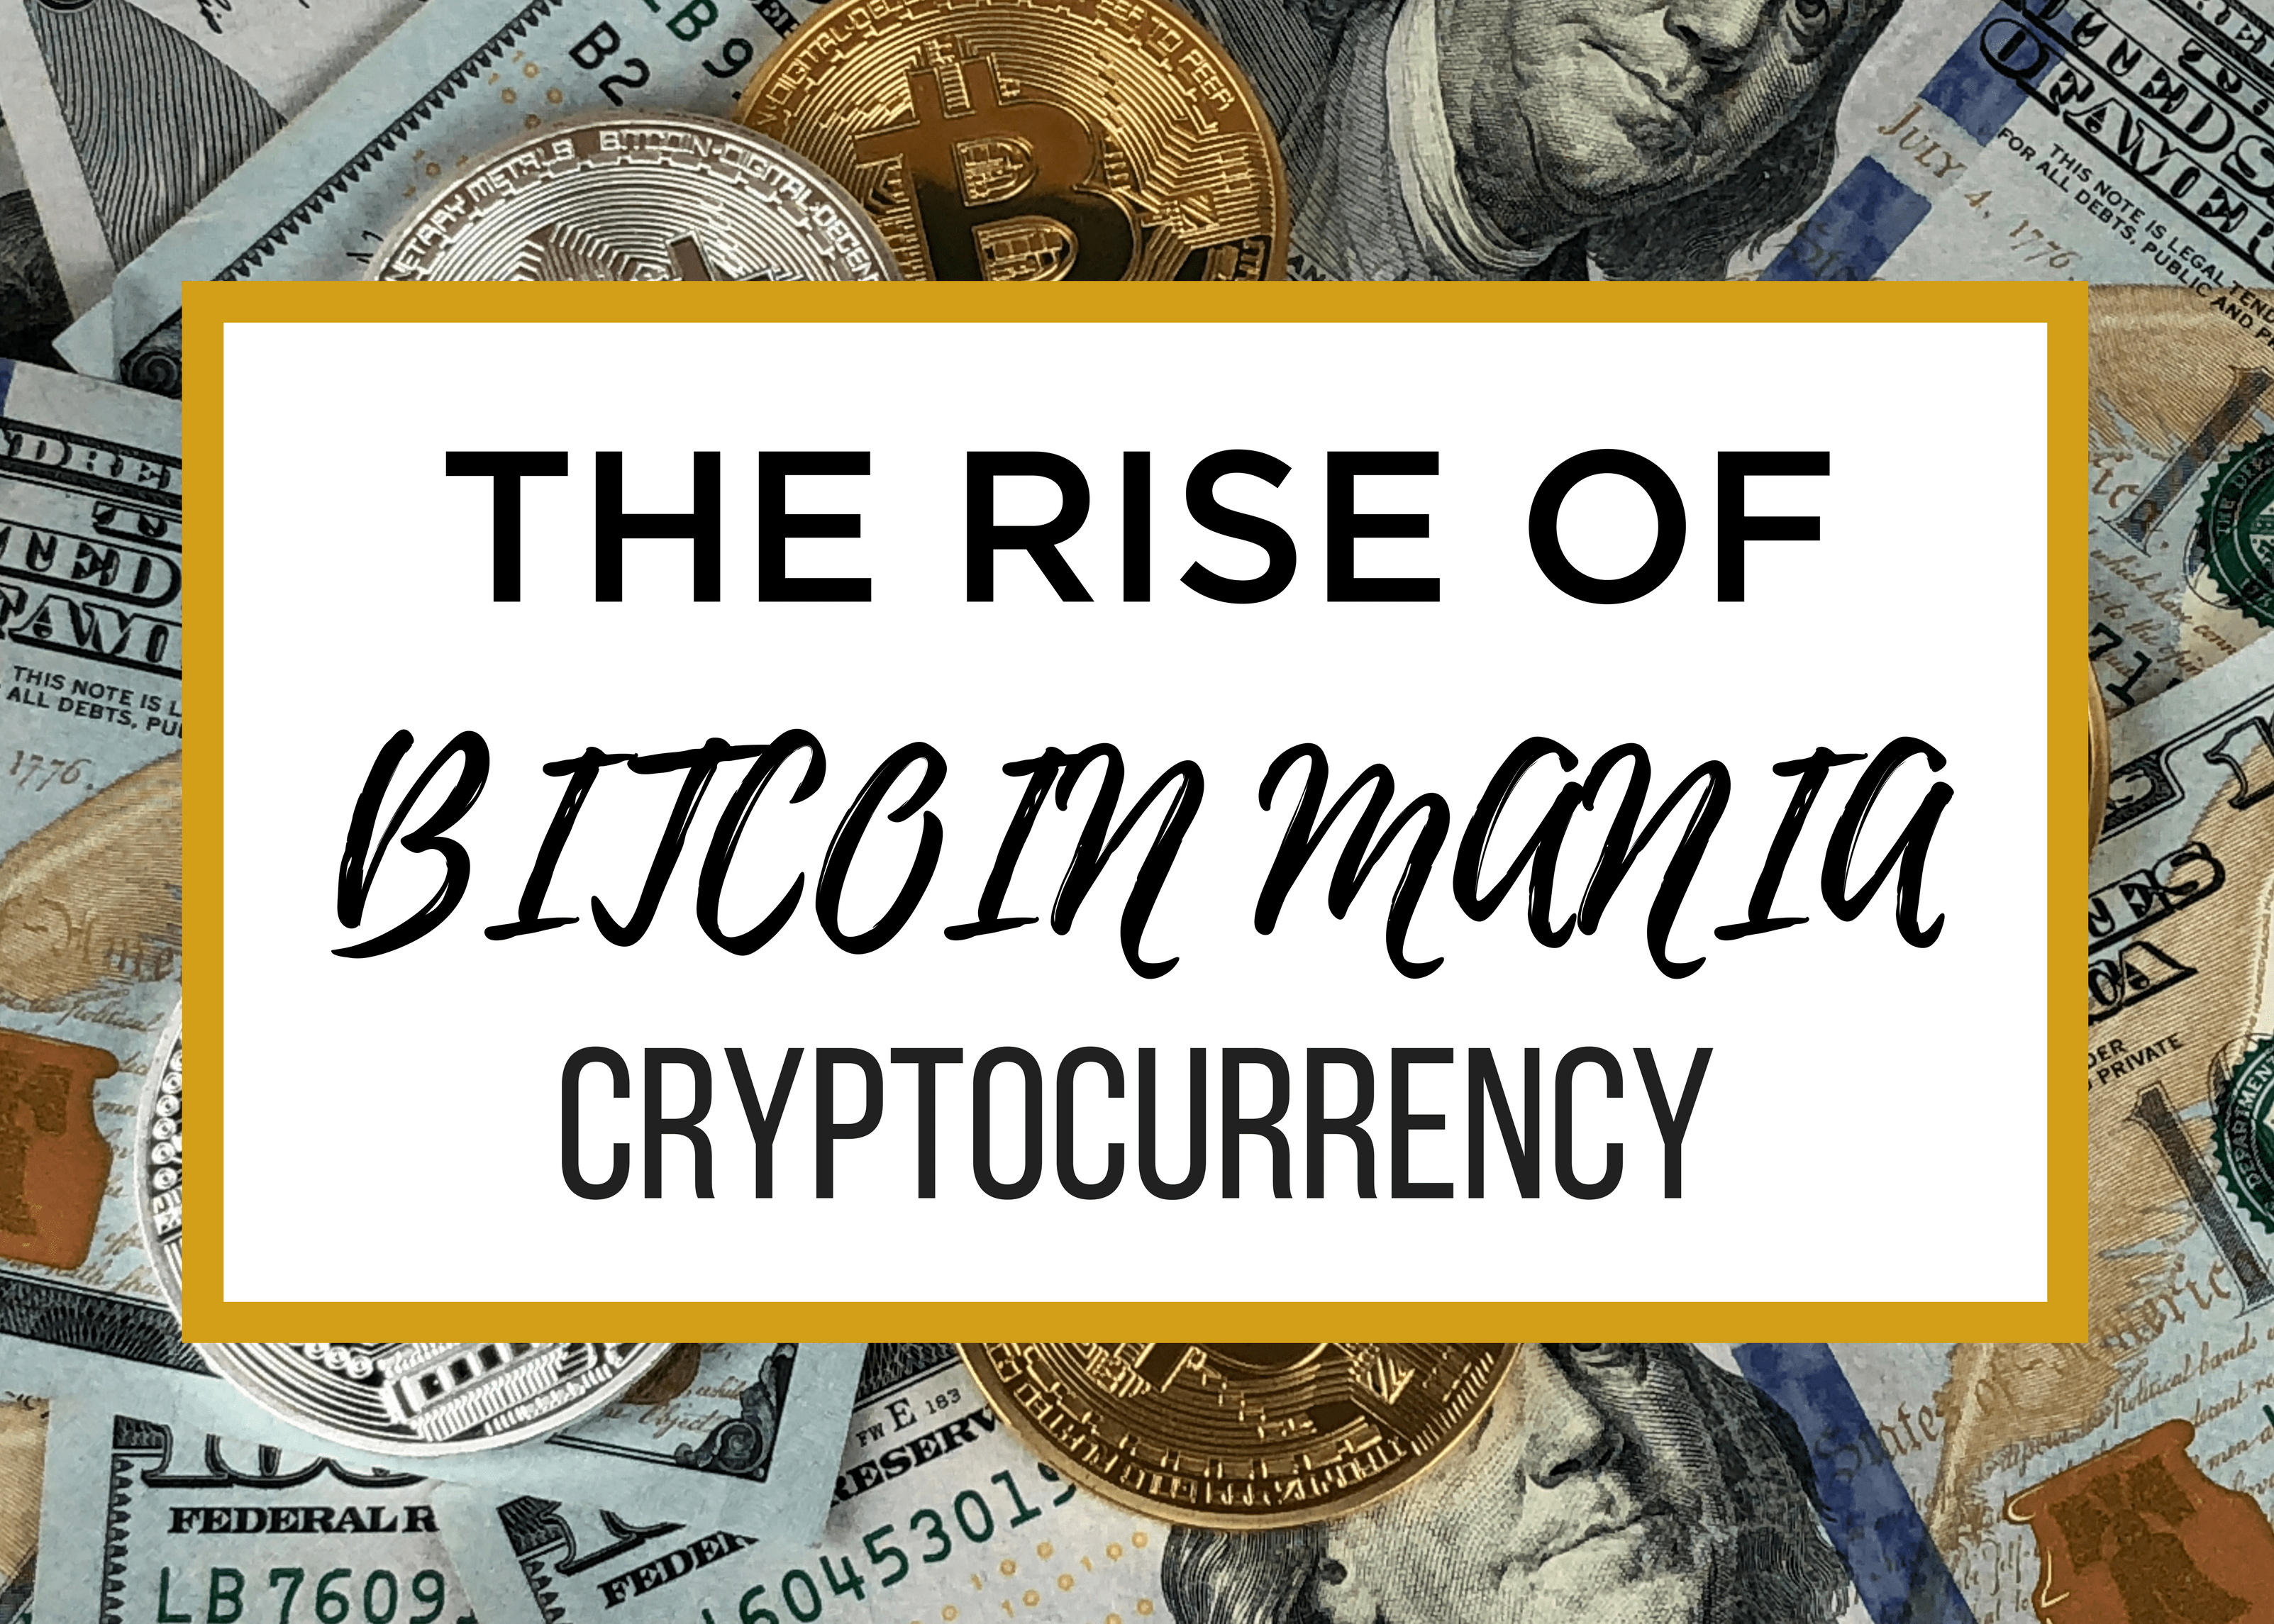 Bitcoin Mania – The Rise of Cryptocurrency